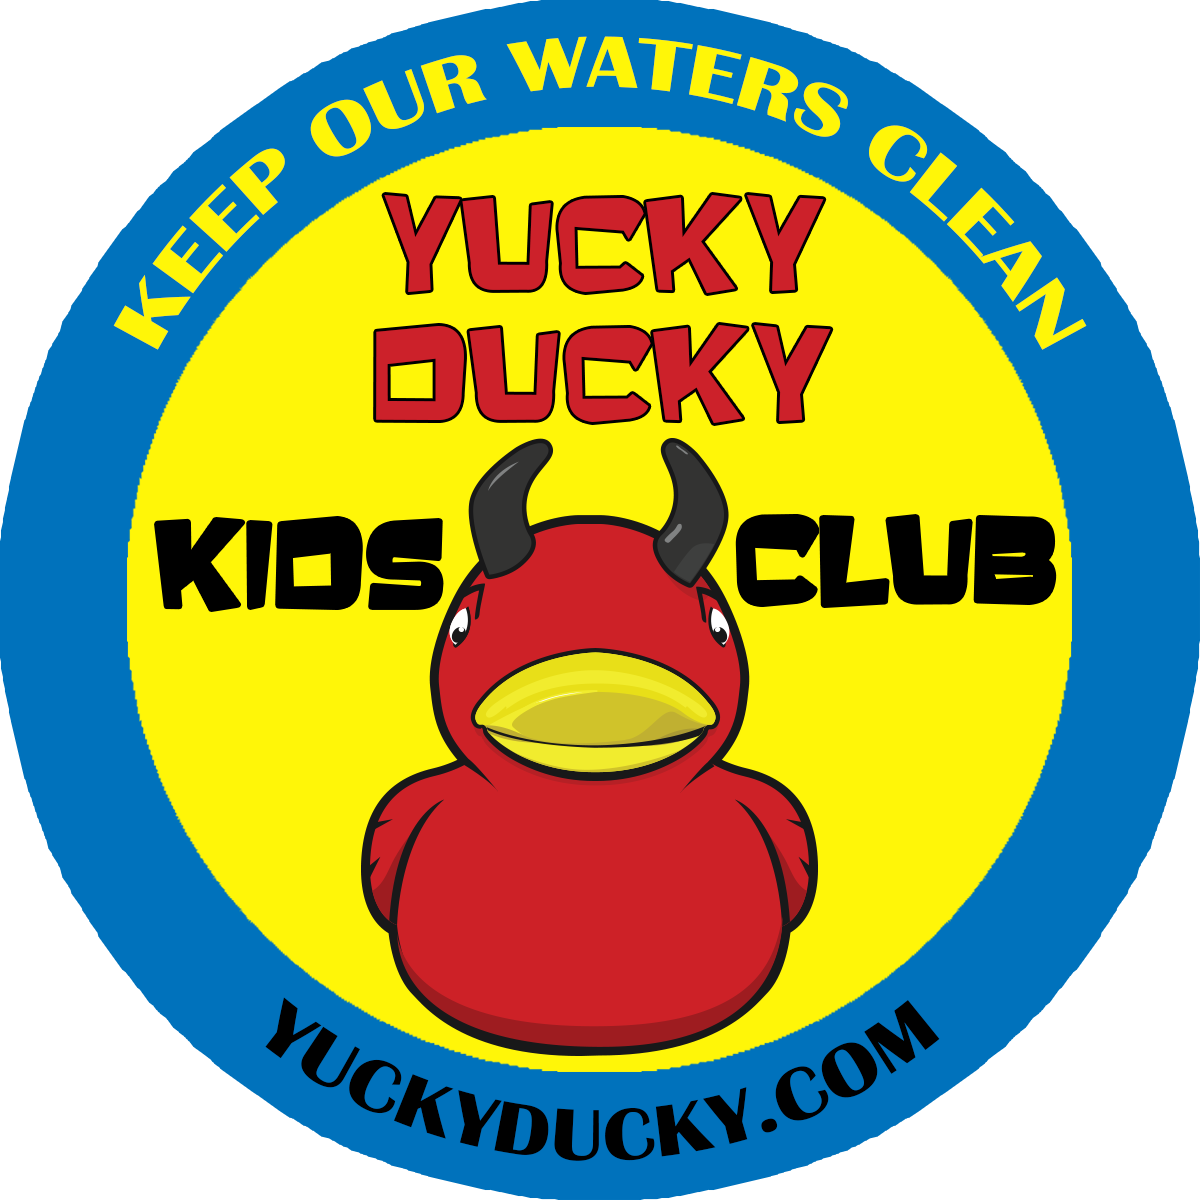 yucky ducky kids club logo